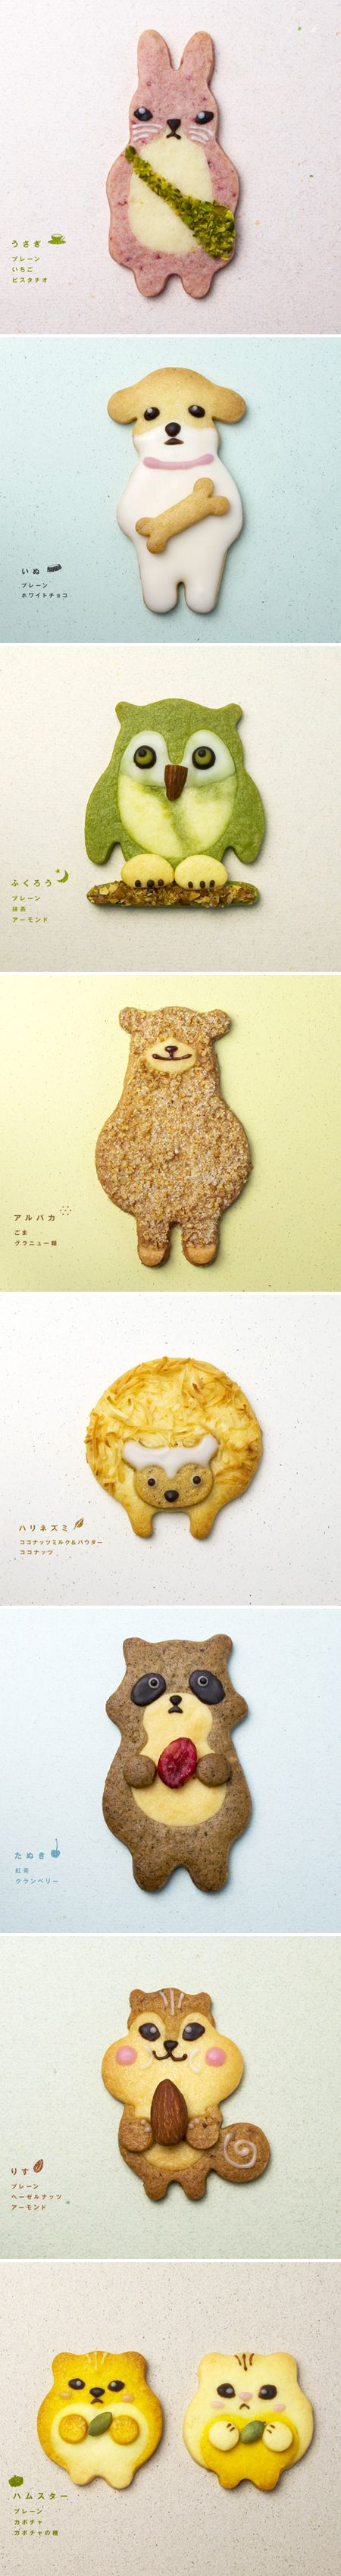 Cute animal cookies by henteco